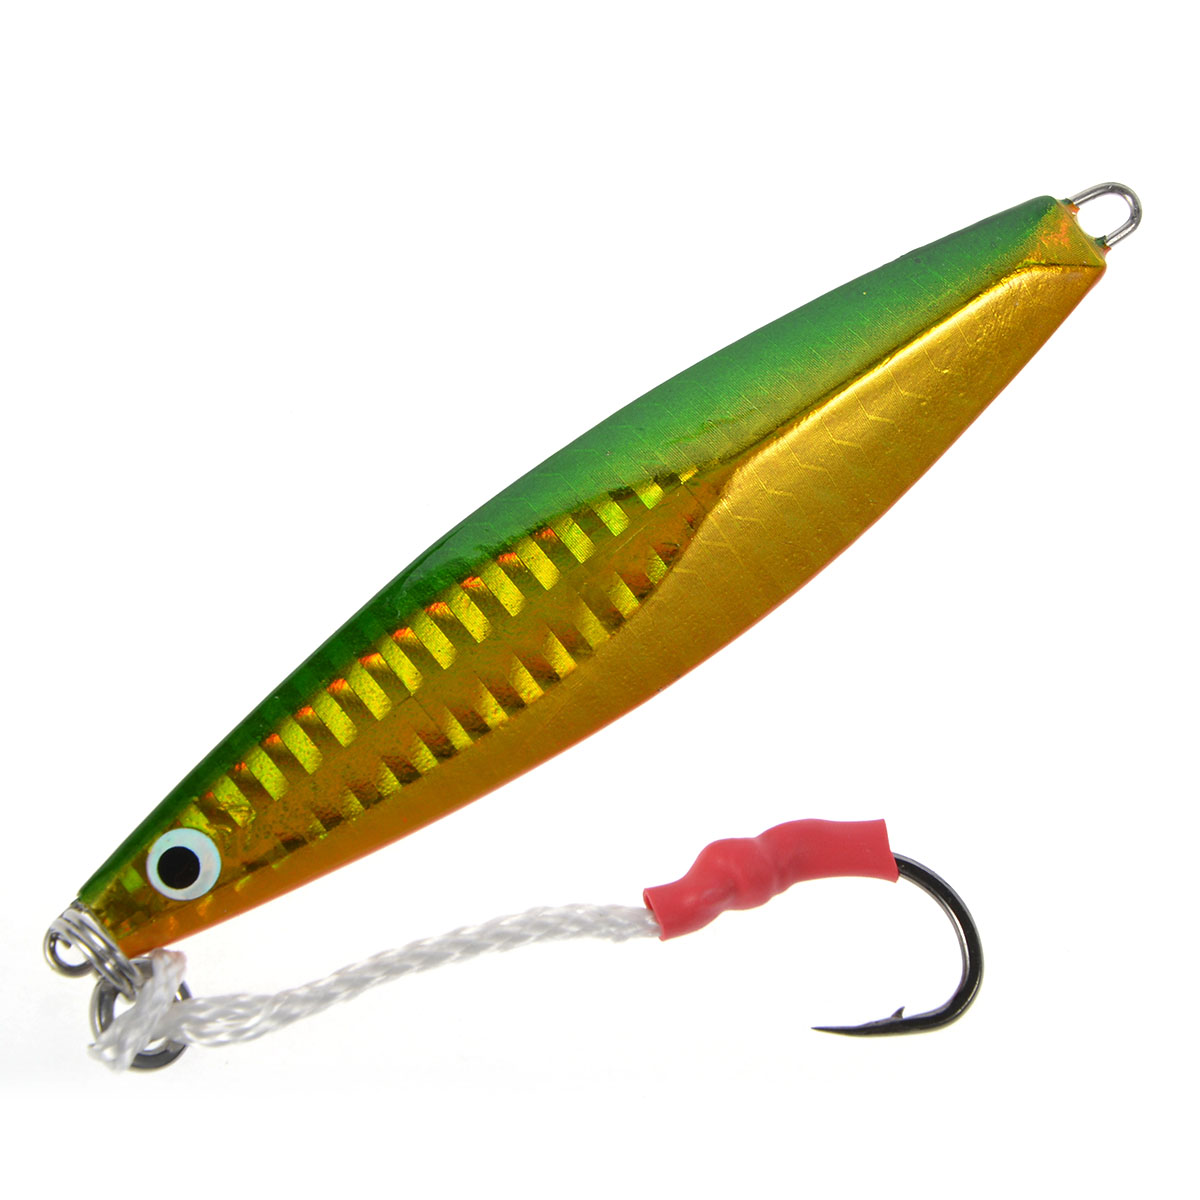 Deep Sea Fishing Lures Minnow Lure (Butterfly Jig) By Cabo Jerkbait Lead Lure (Yellow) 3.46-Inch